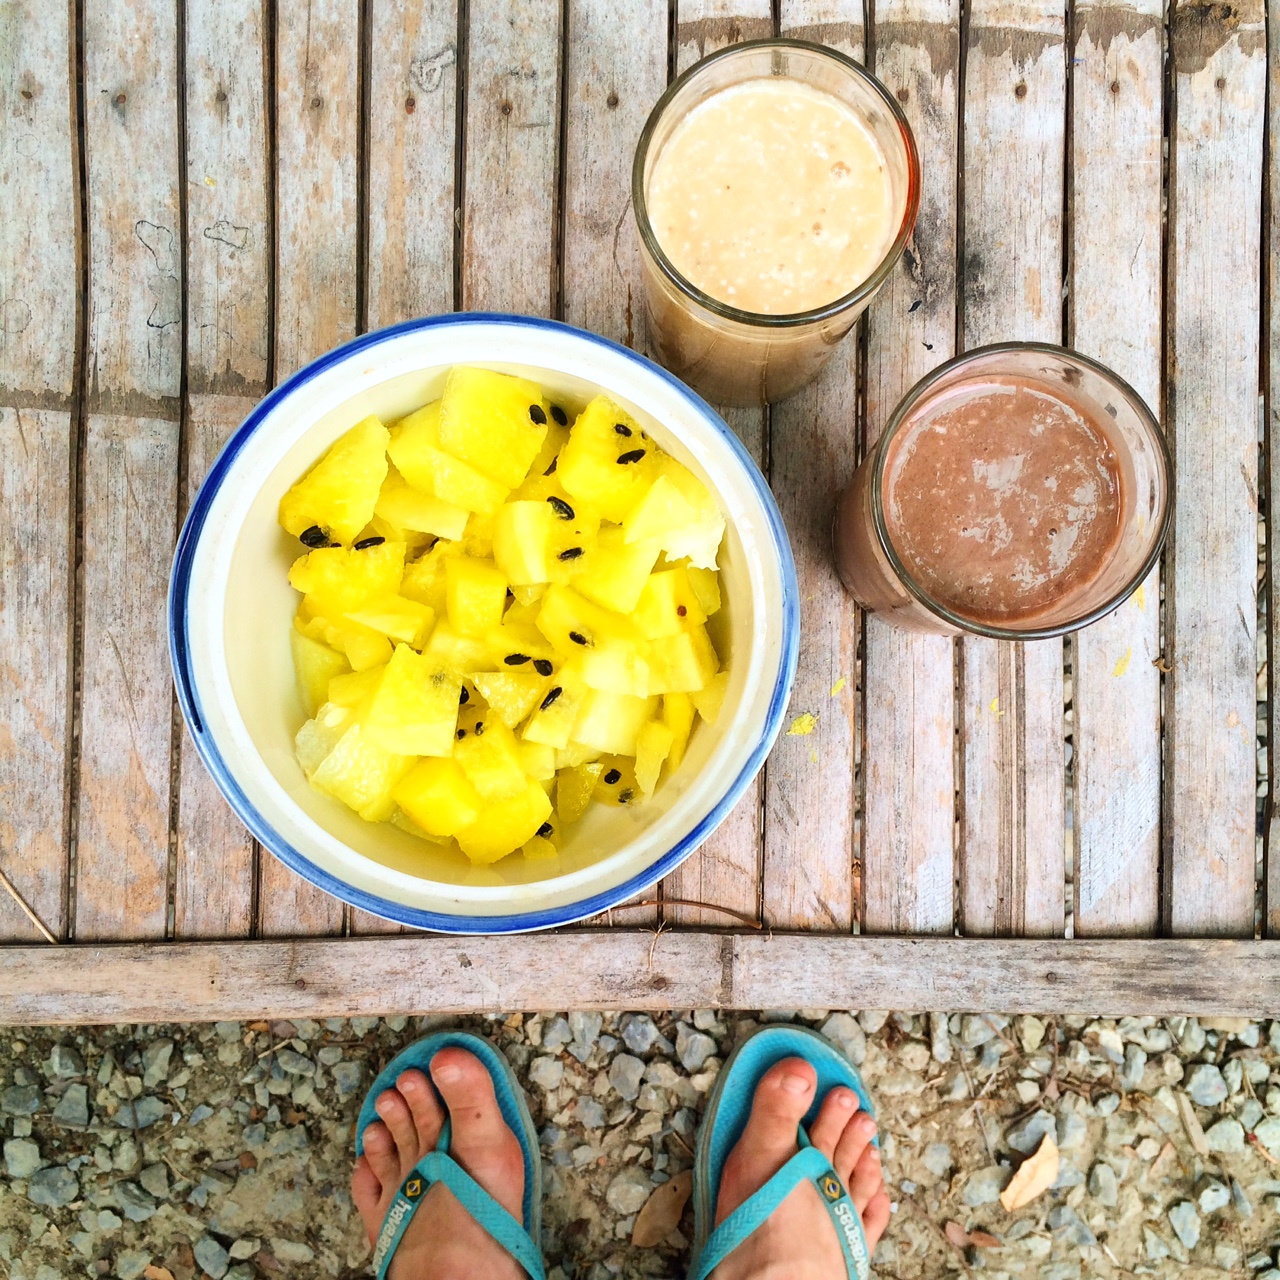 The only photo I took of the smoothies (alongside a yellow watermelon -  how cool?)